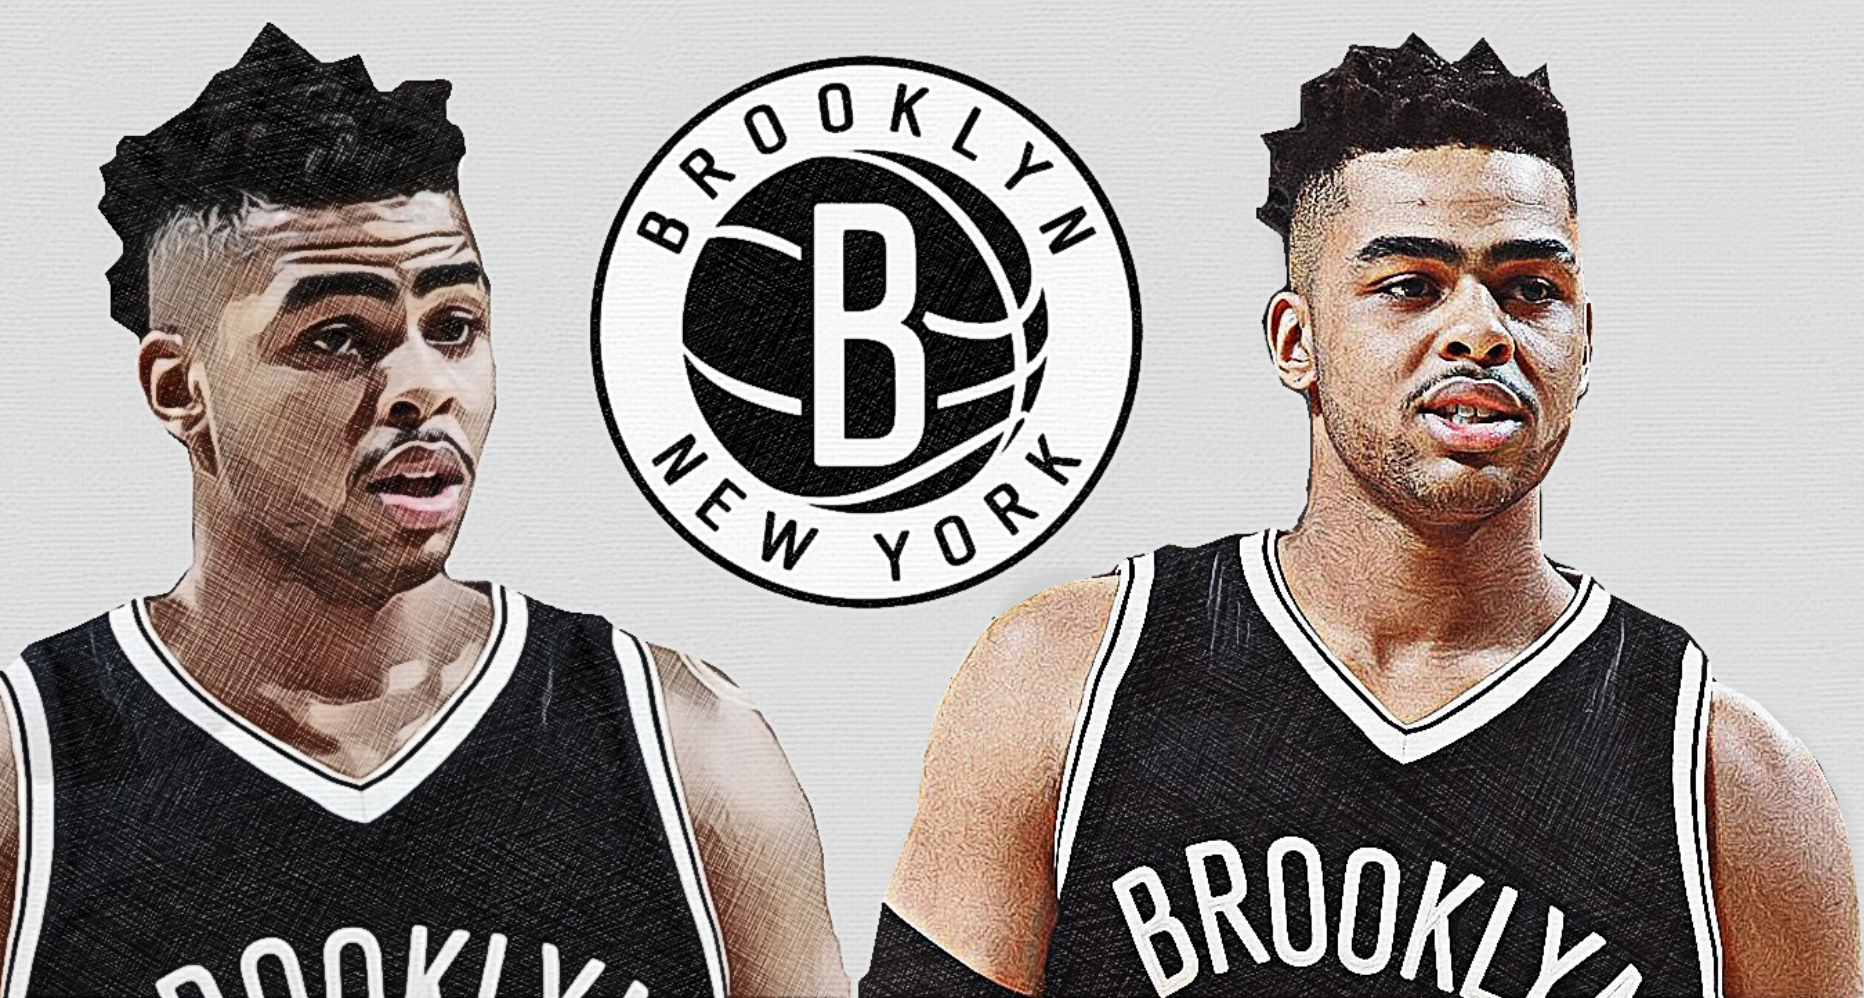 After rocky road in LA, Russell seeks smooth start with Nets